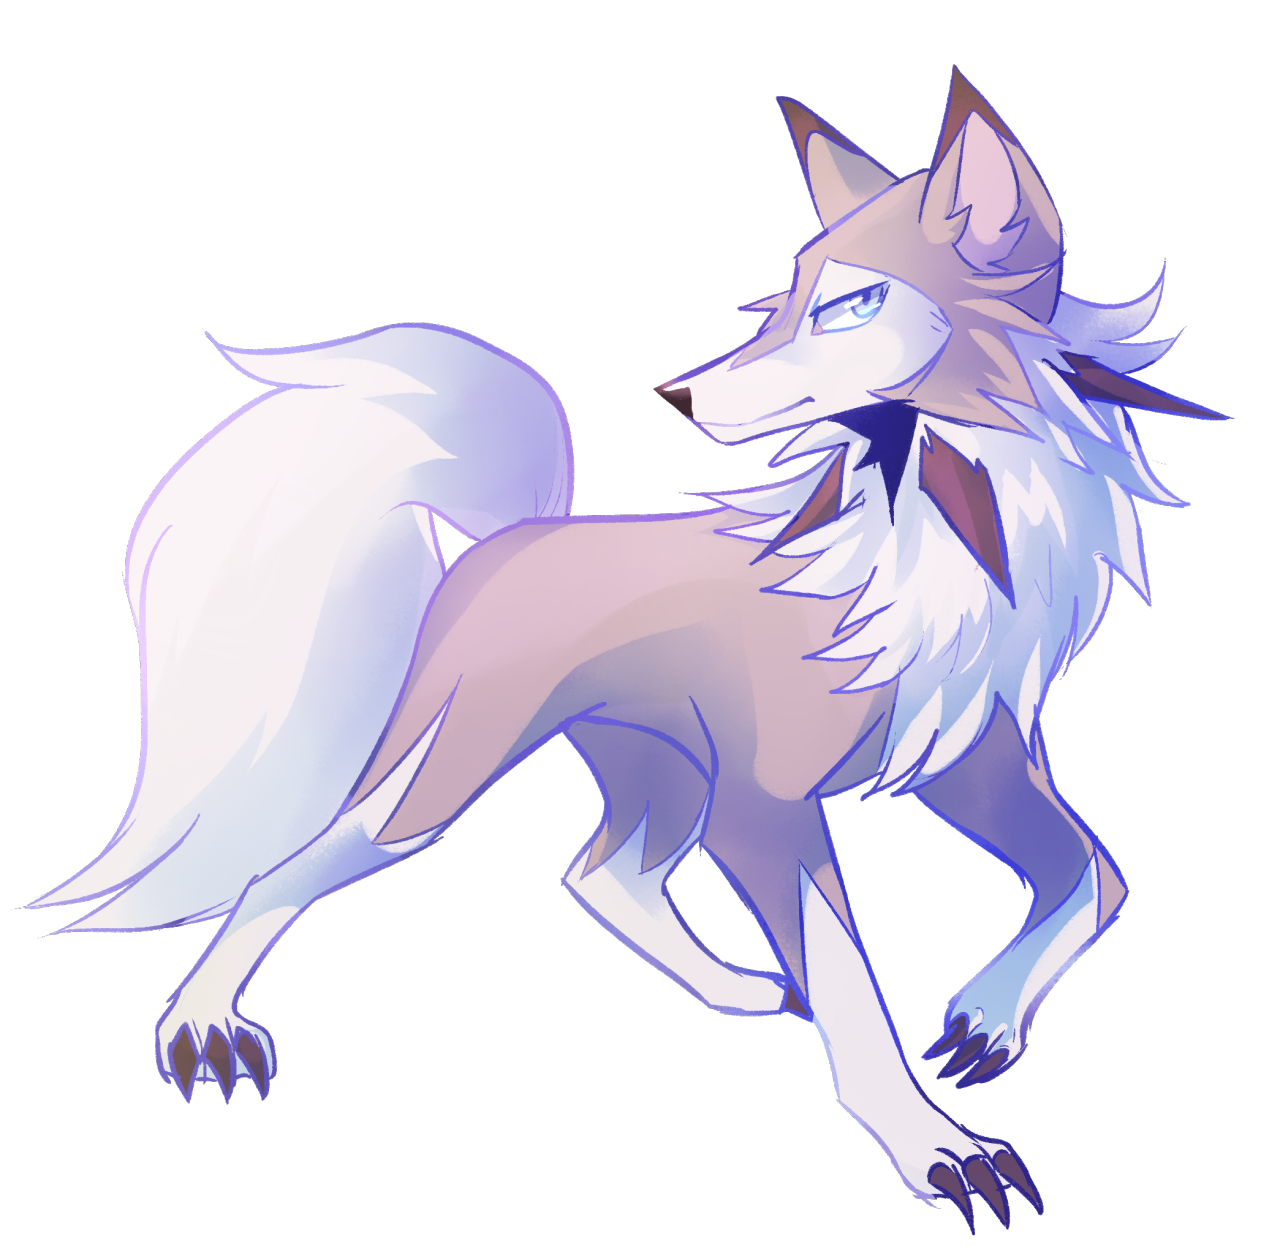 I still think this is the Pokemon form of Wolf Link Dog